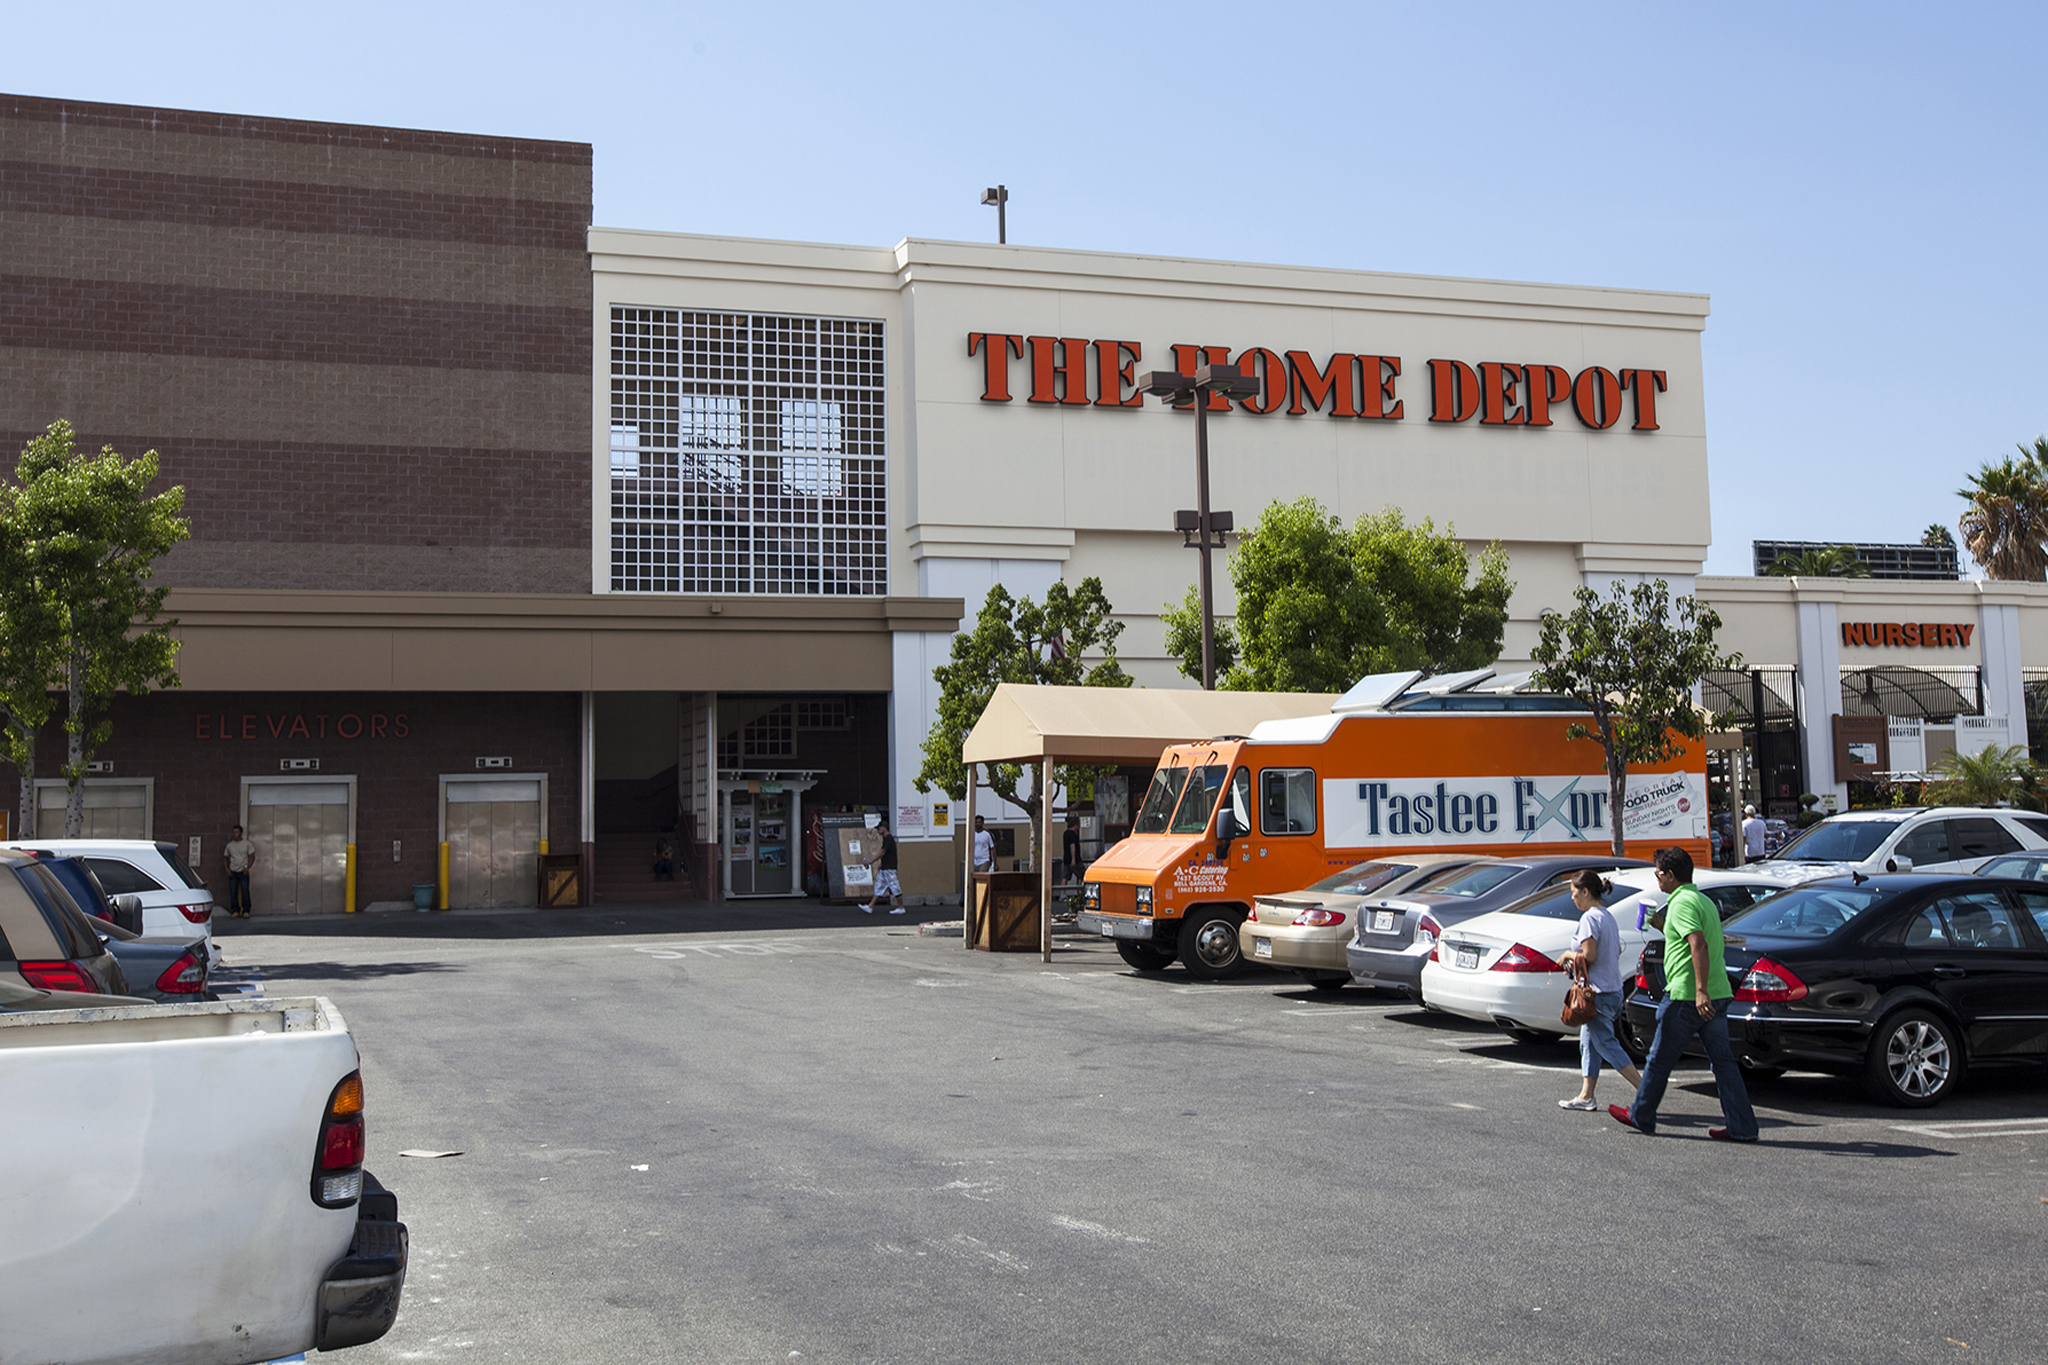 The best cruising spots in Los Angeles Home Depot Glendale Ny on home depot glendale ca, panera bread glendale ny, sports authority glendale ny, home depot philadelphia pa,